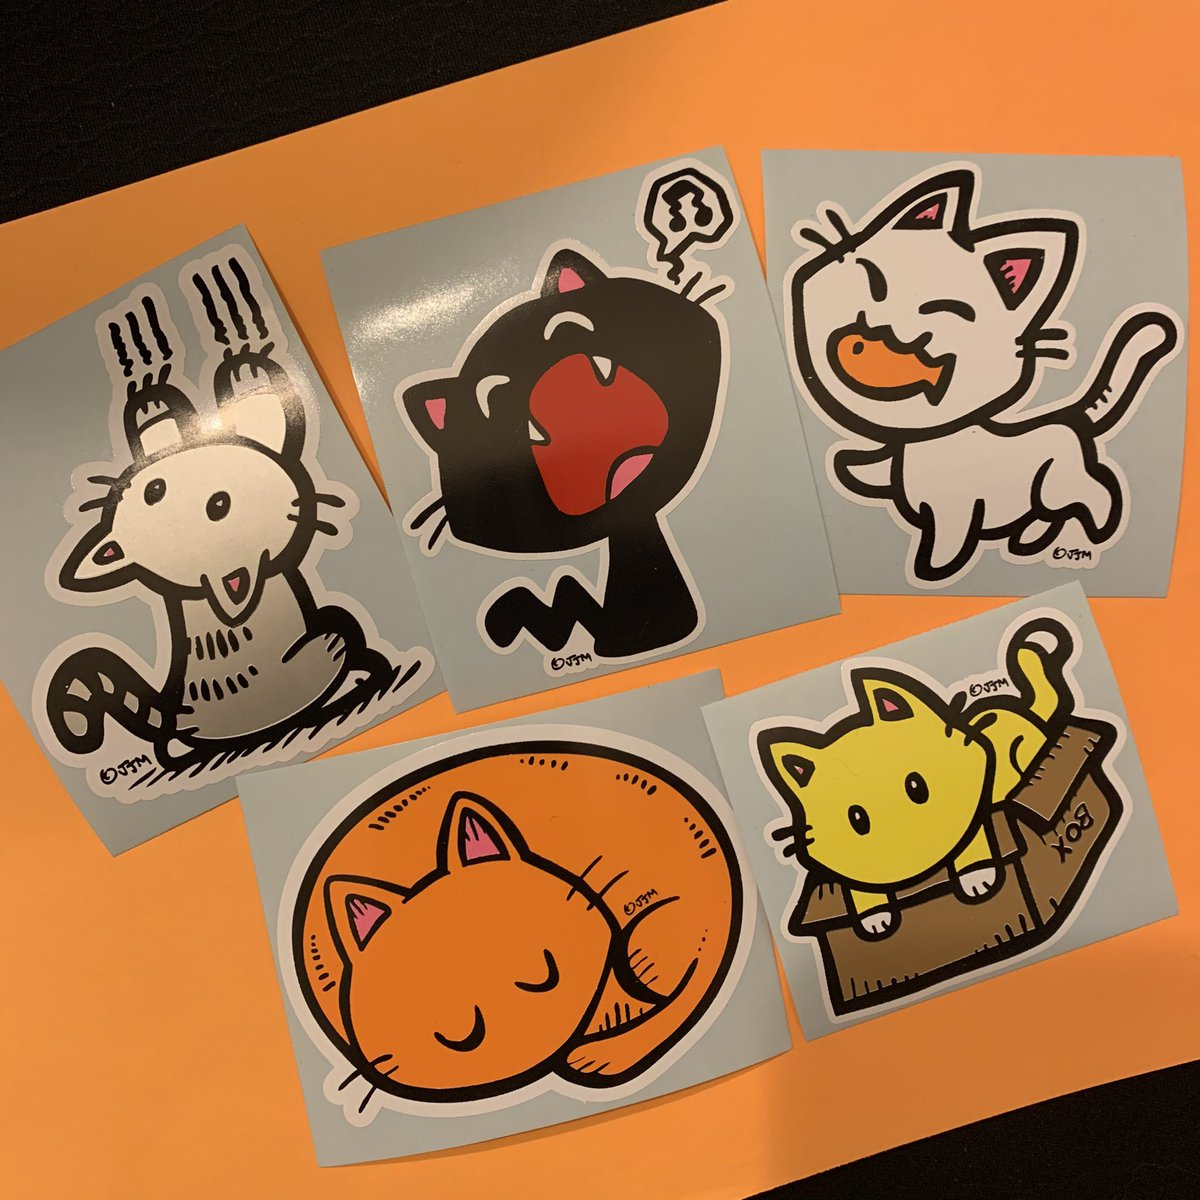 *KAWAII KON/CONIC CON HONOLULU VIRTUAL CON COUNTDOWN #1 - 5 brand new limited vinyl cat stickers thanks to Katie Konno & Ross Mukai of Oahu Makerspace • These will be only available on my Eventry online store at  https://t.co/DgN686K1pm  starting 9/25/20 https://t.co/0YmhxUzZqM